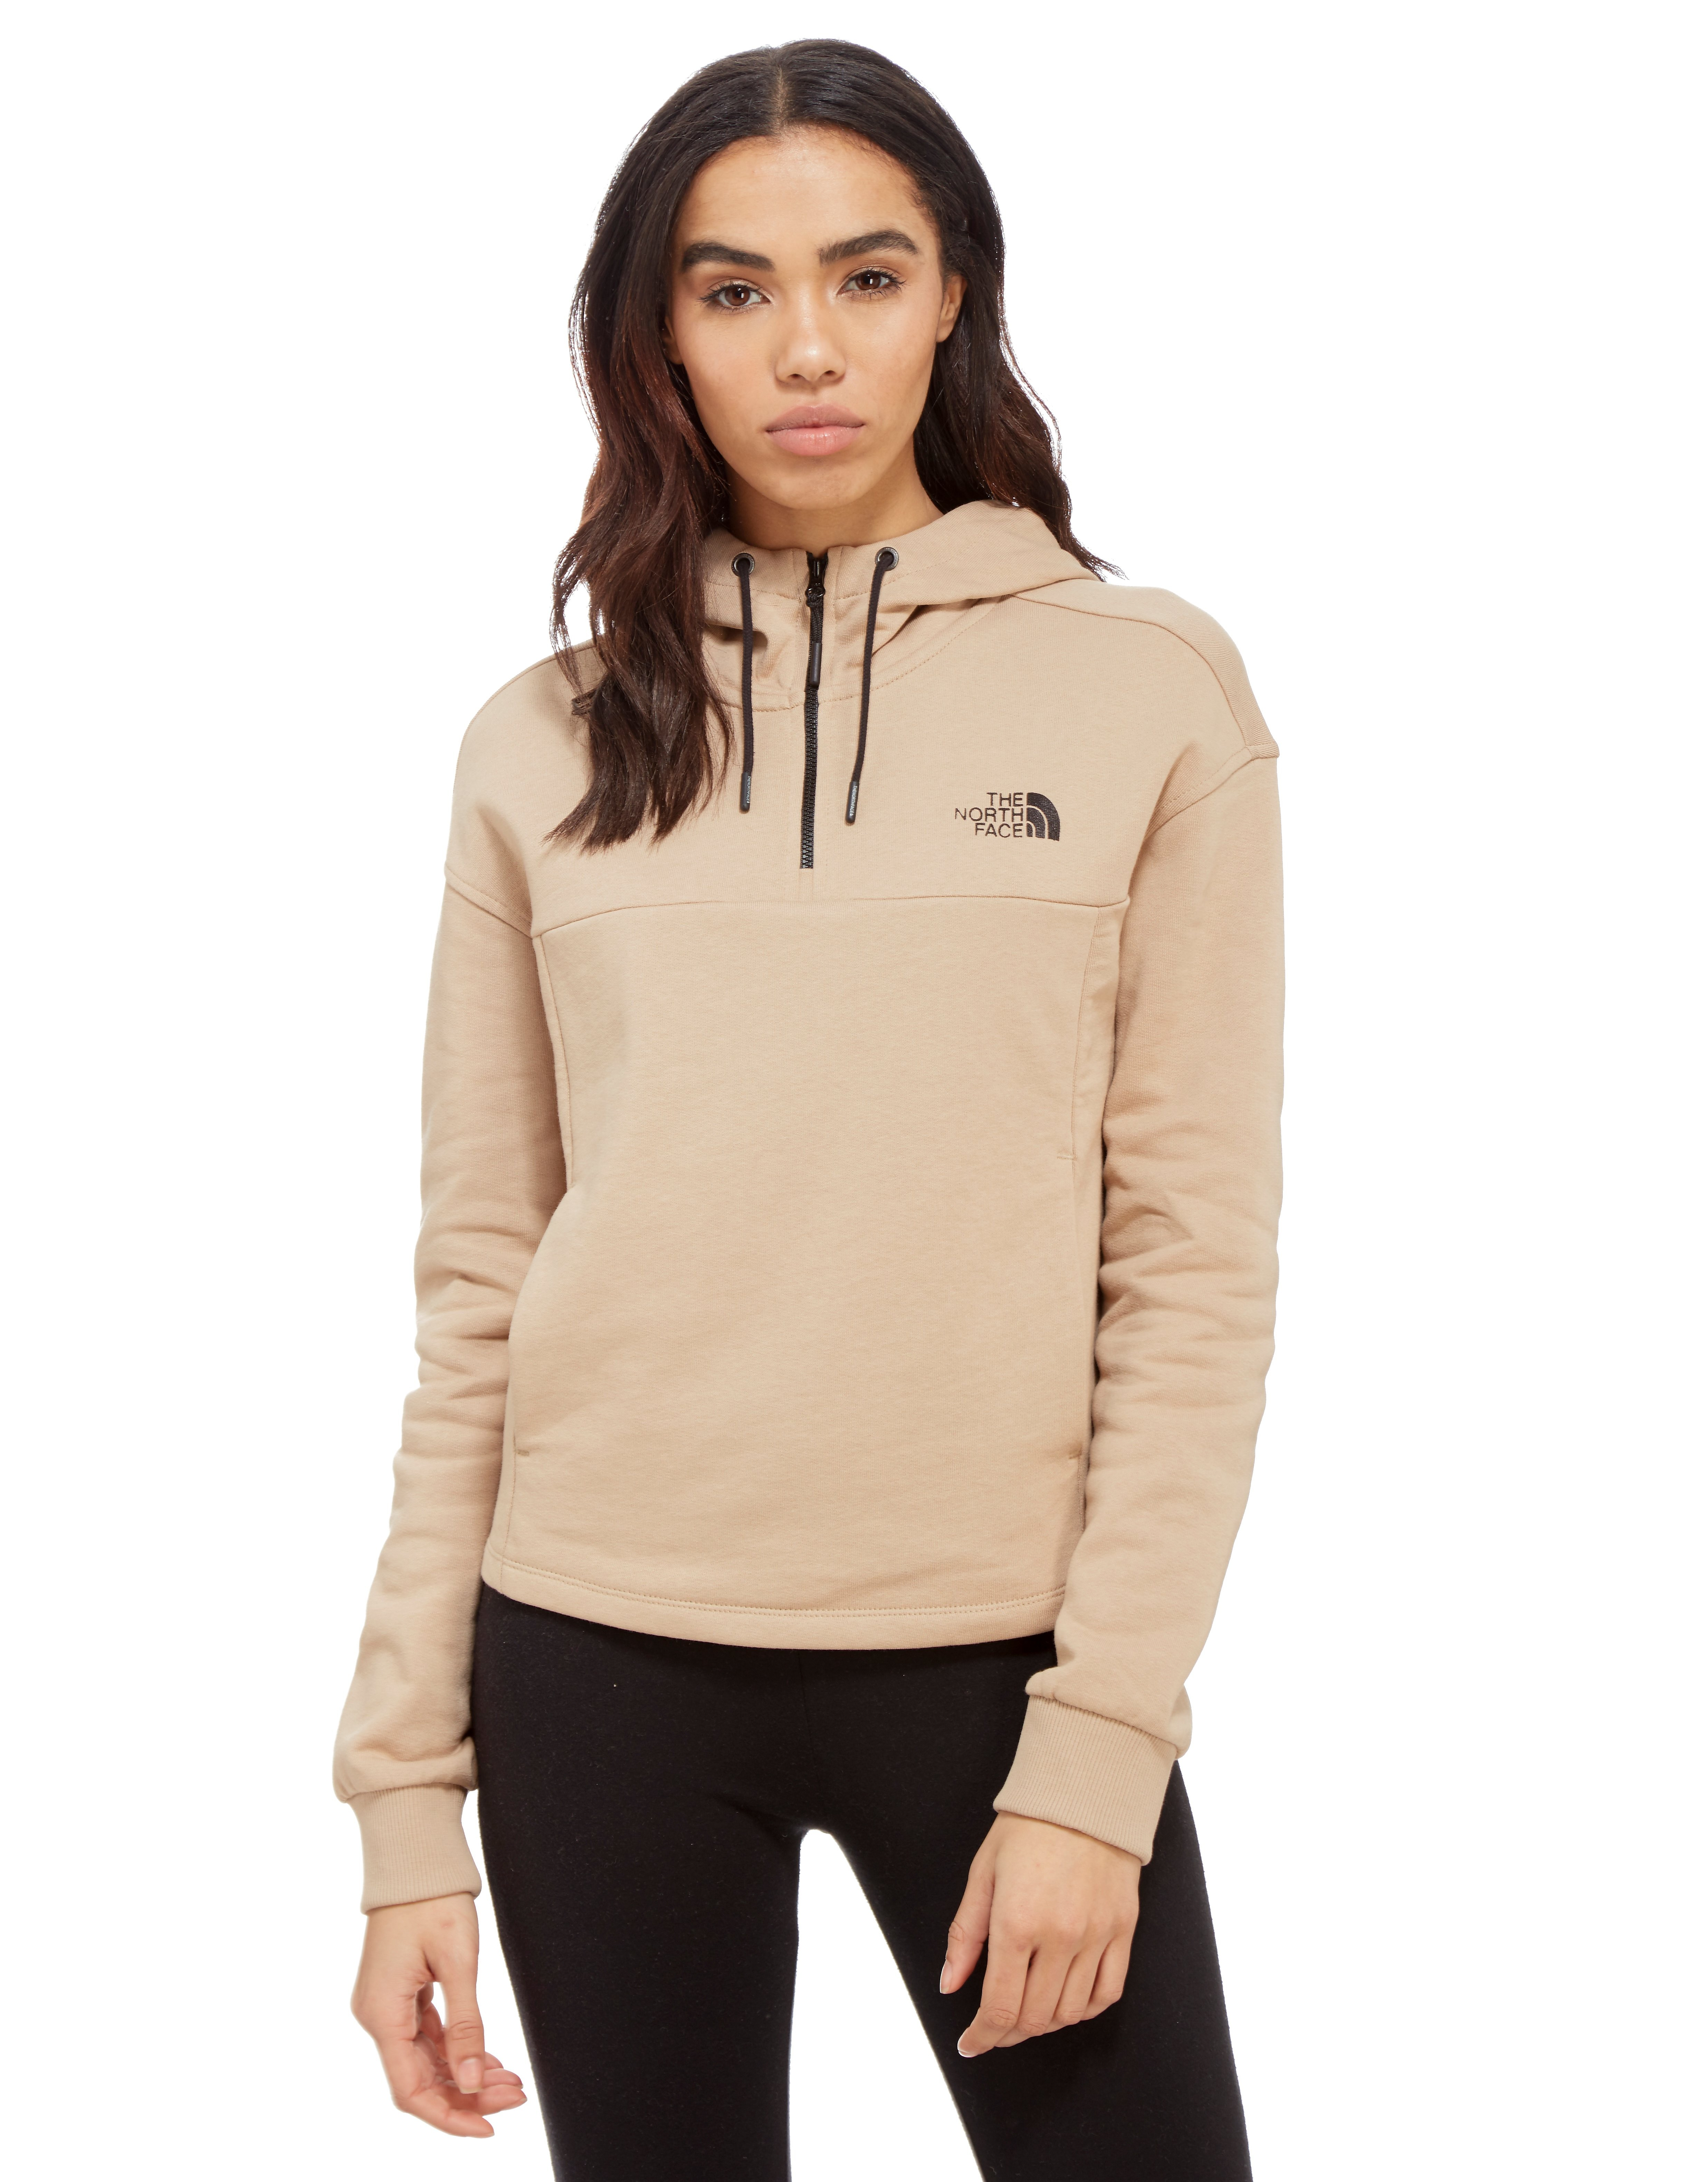 The North Face 1/4 Zip Fleece Hoody